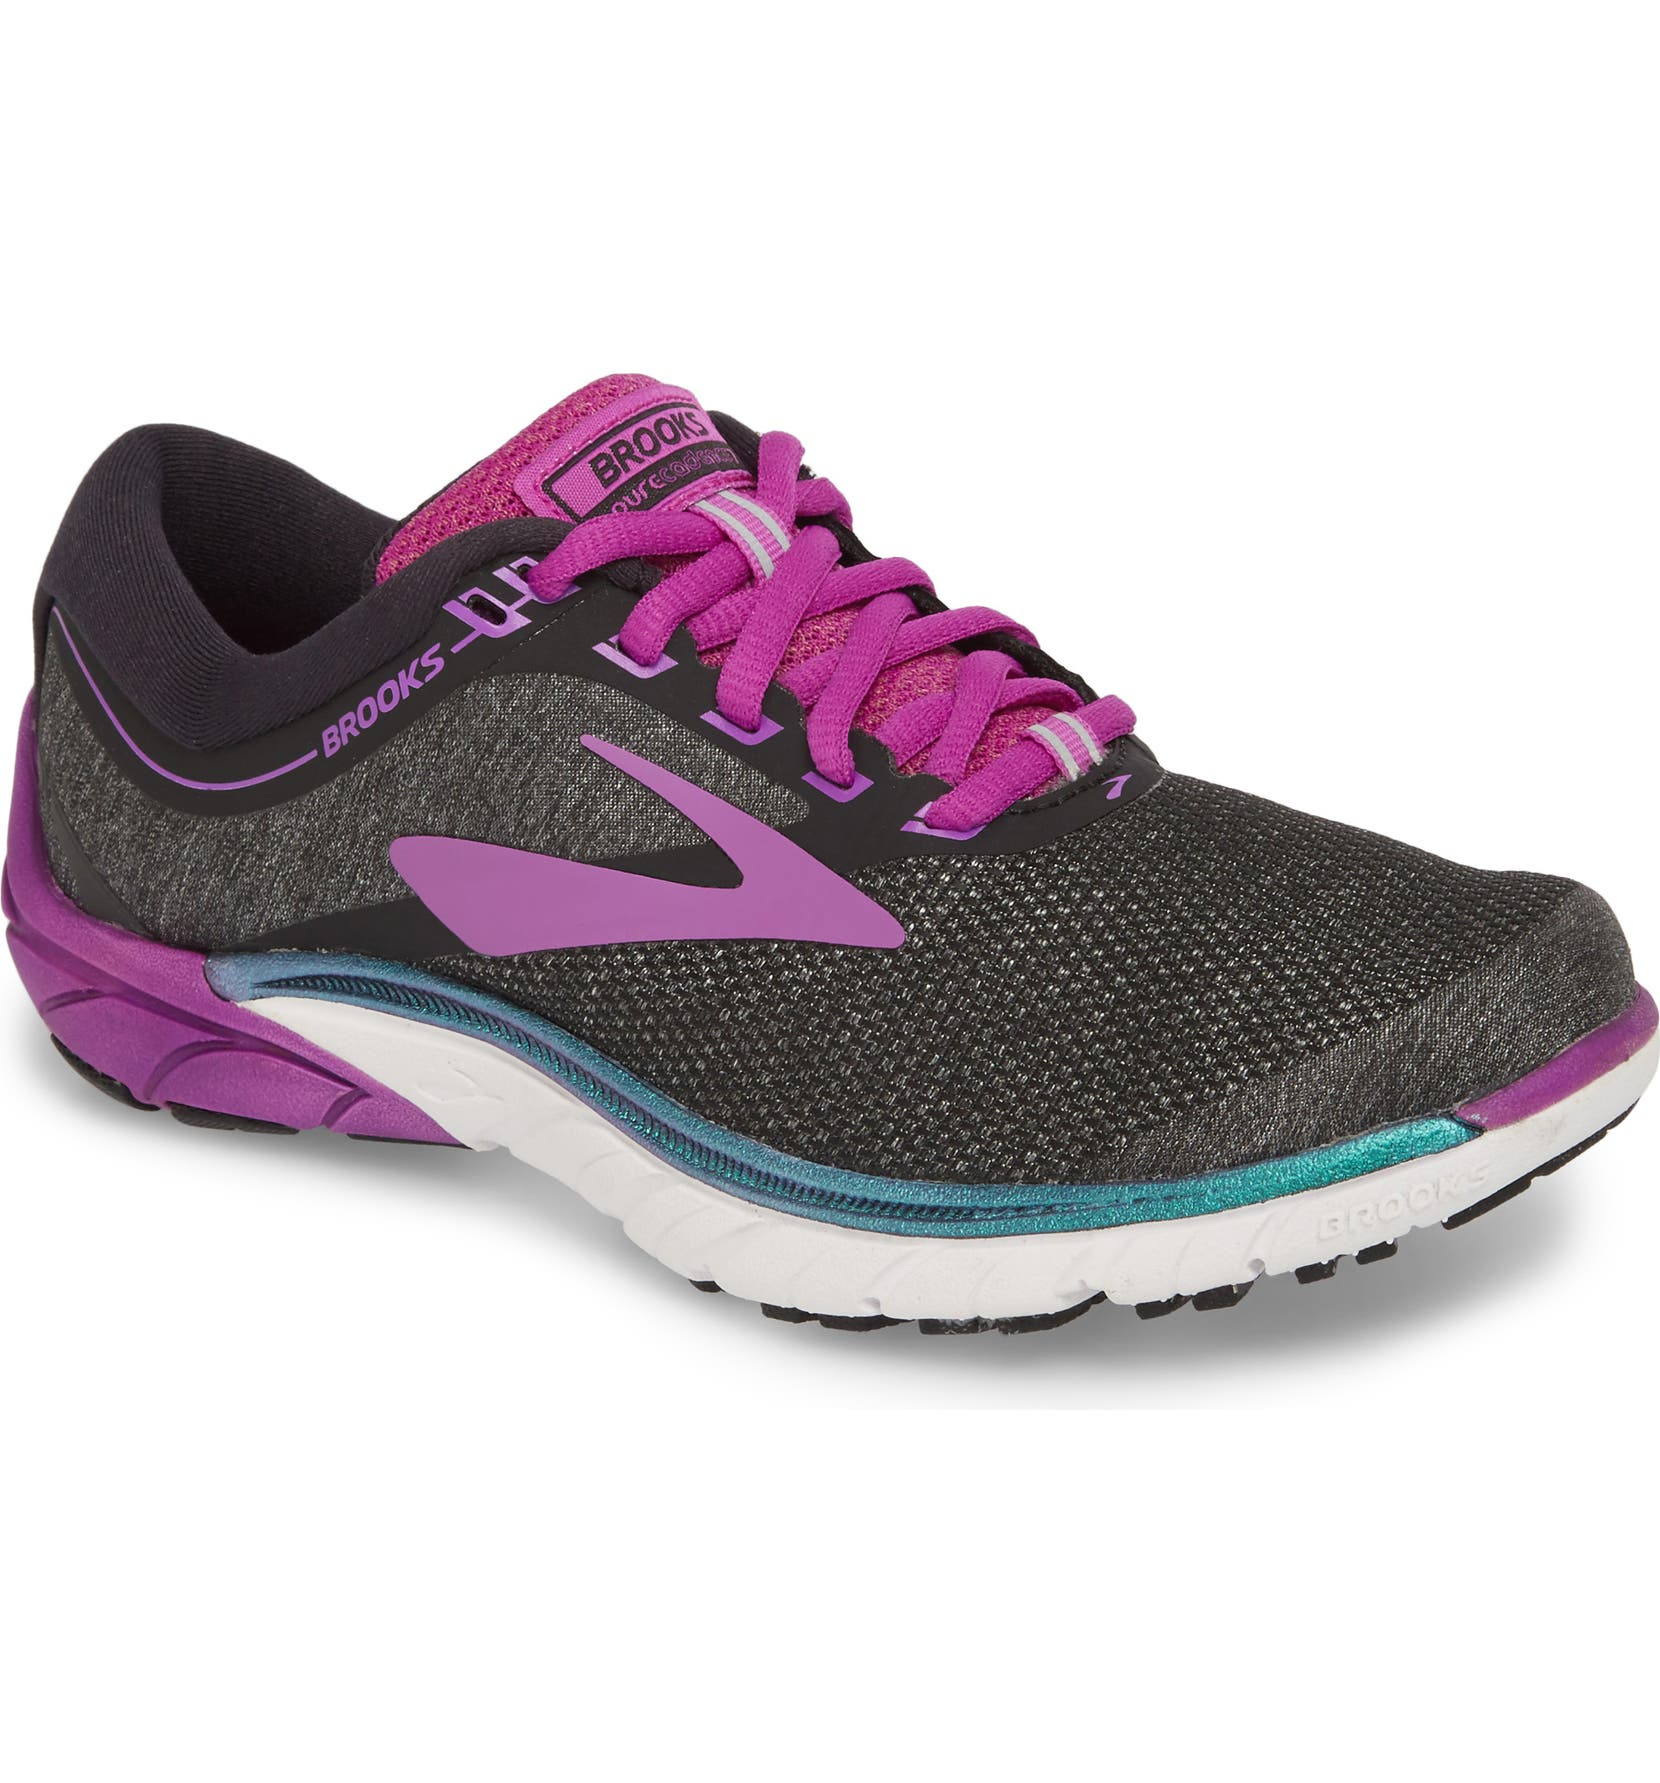 576e2996345 Brooks PureCadence 7 Road Running Shoe (Women)